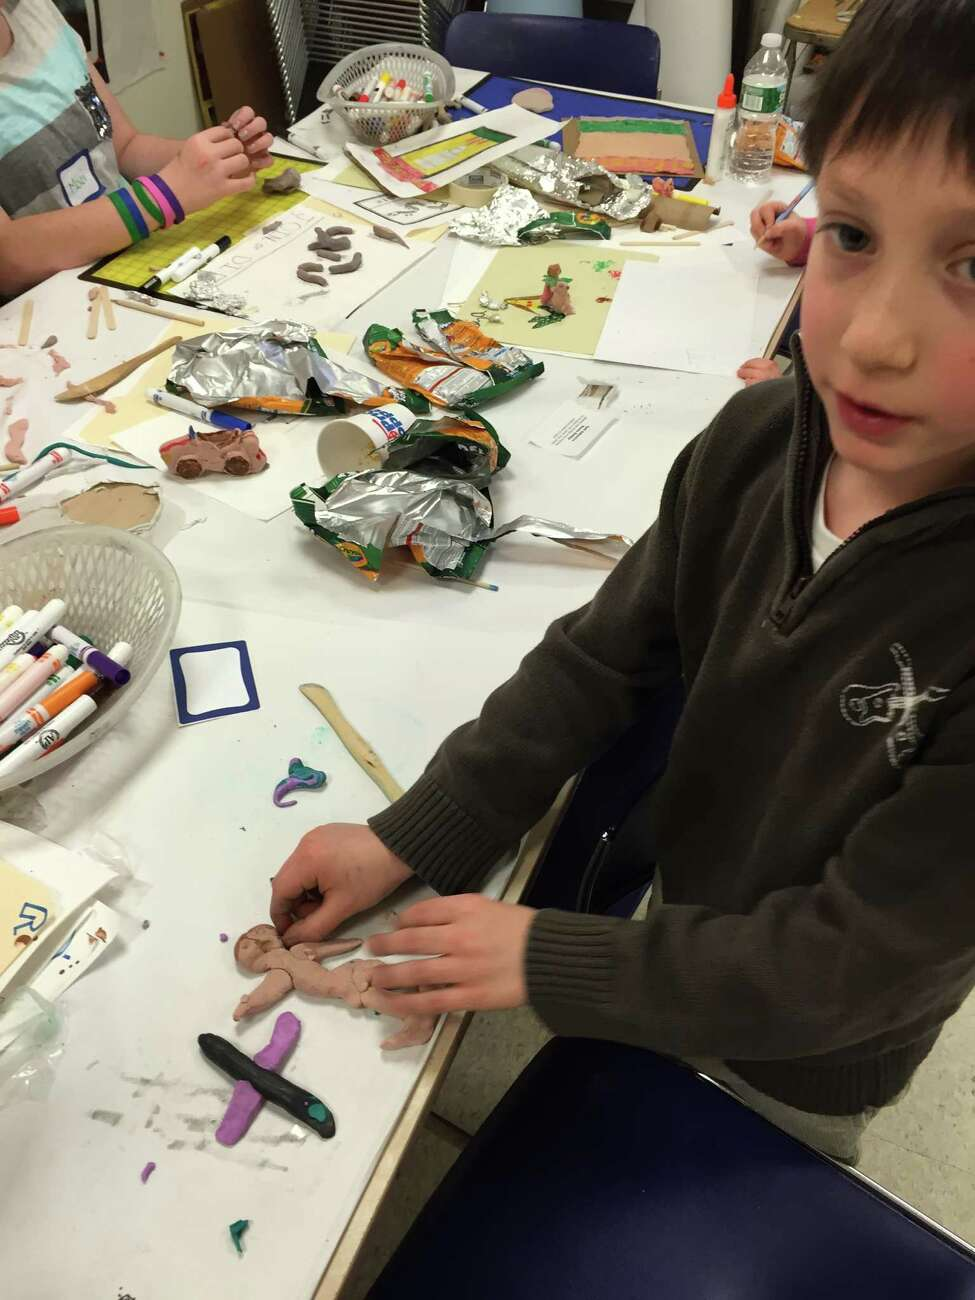 Daniel Kurtz, a third-grader at Mater Christi School in Albany, shows off a clay model of his cargo plane and pilot at the Albany Institute of History and Art's